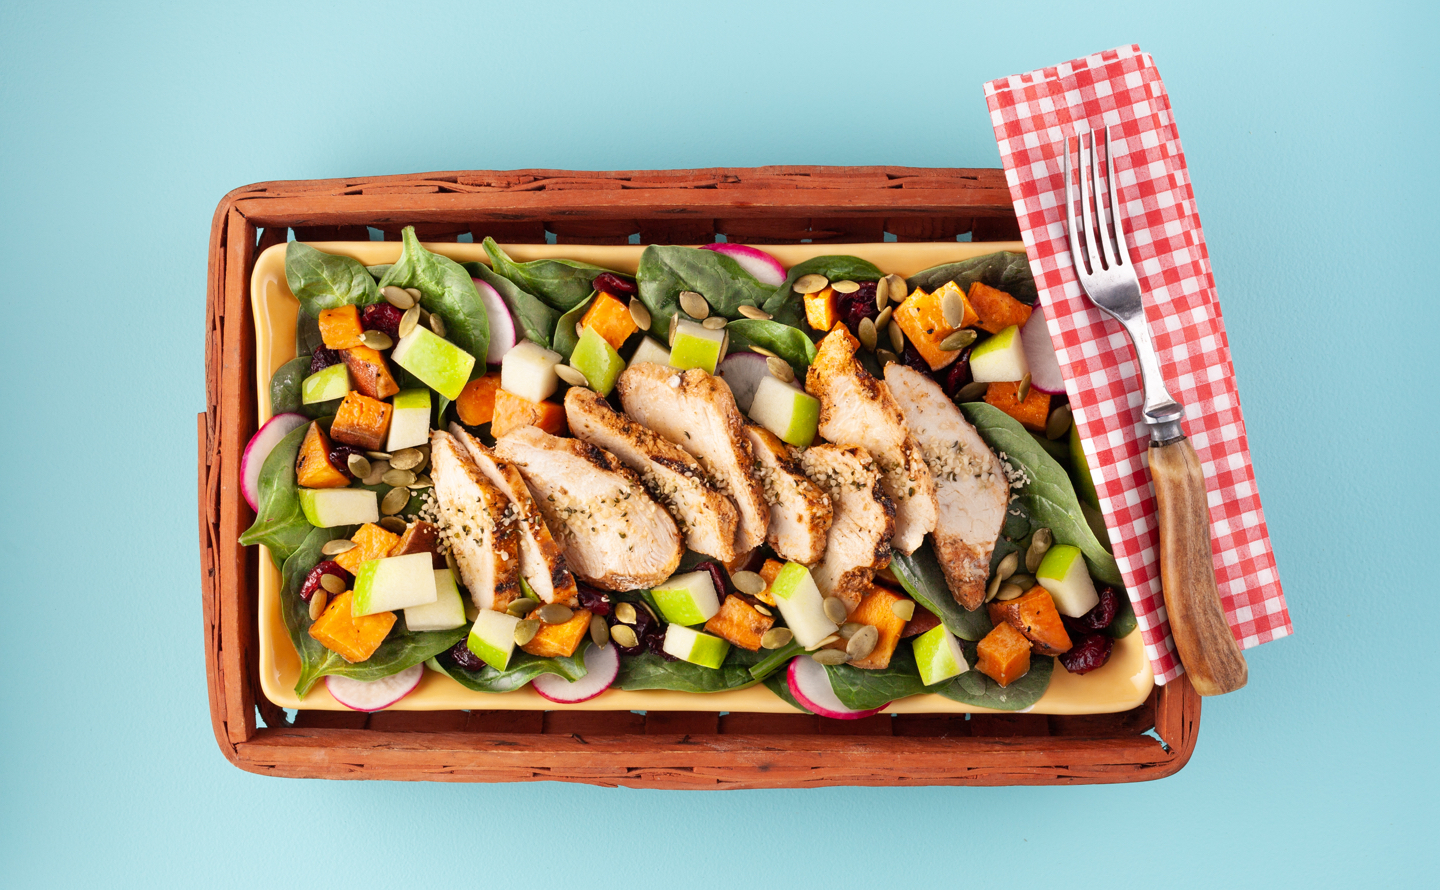 Grilled Chicken and Apple Salad with Apple Cider Vinaigrette